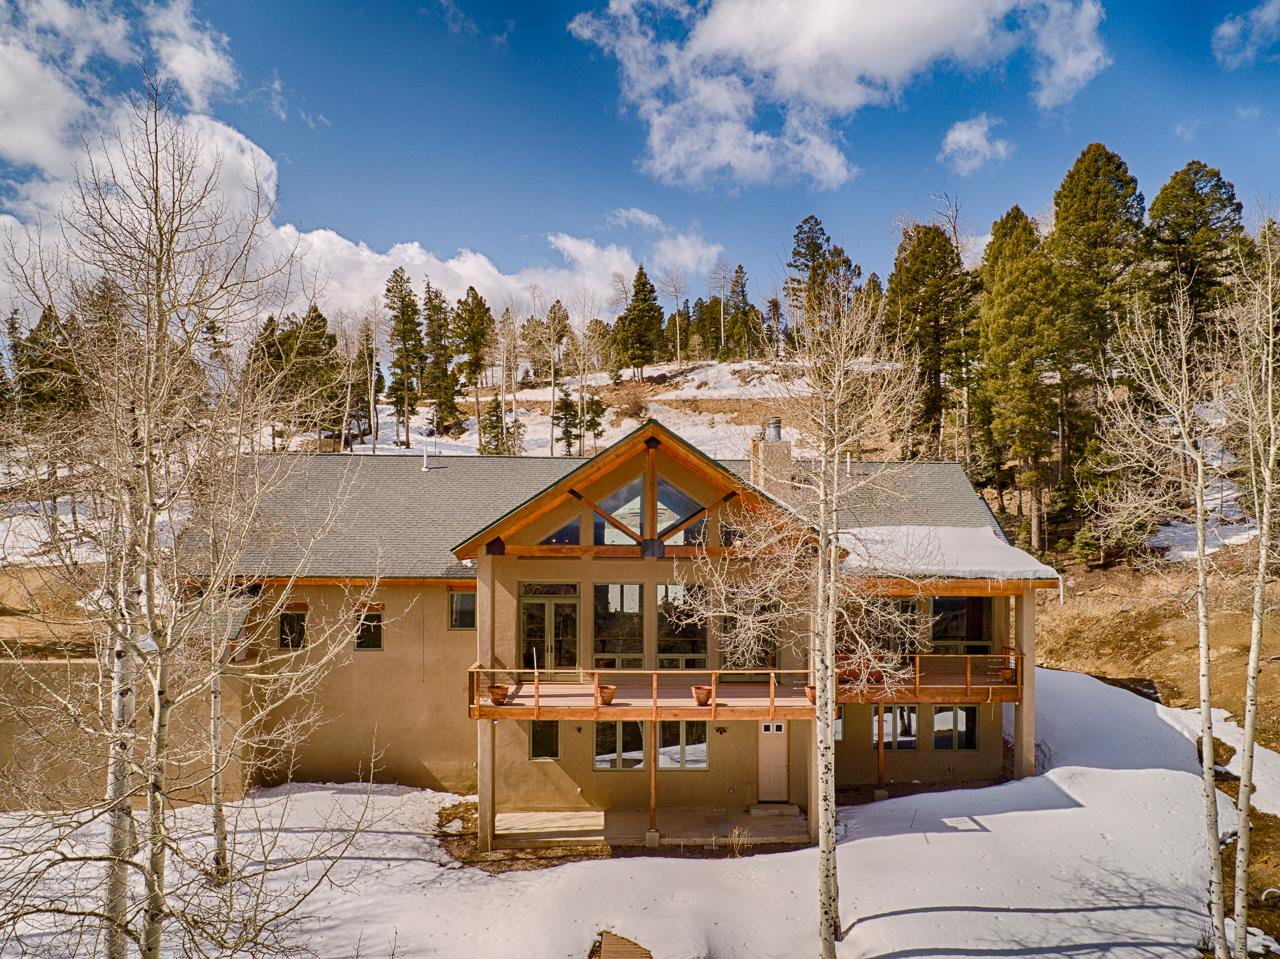 109 Zia Rd Angel Fire, NM 87710